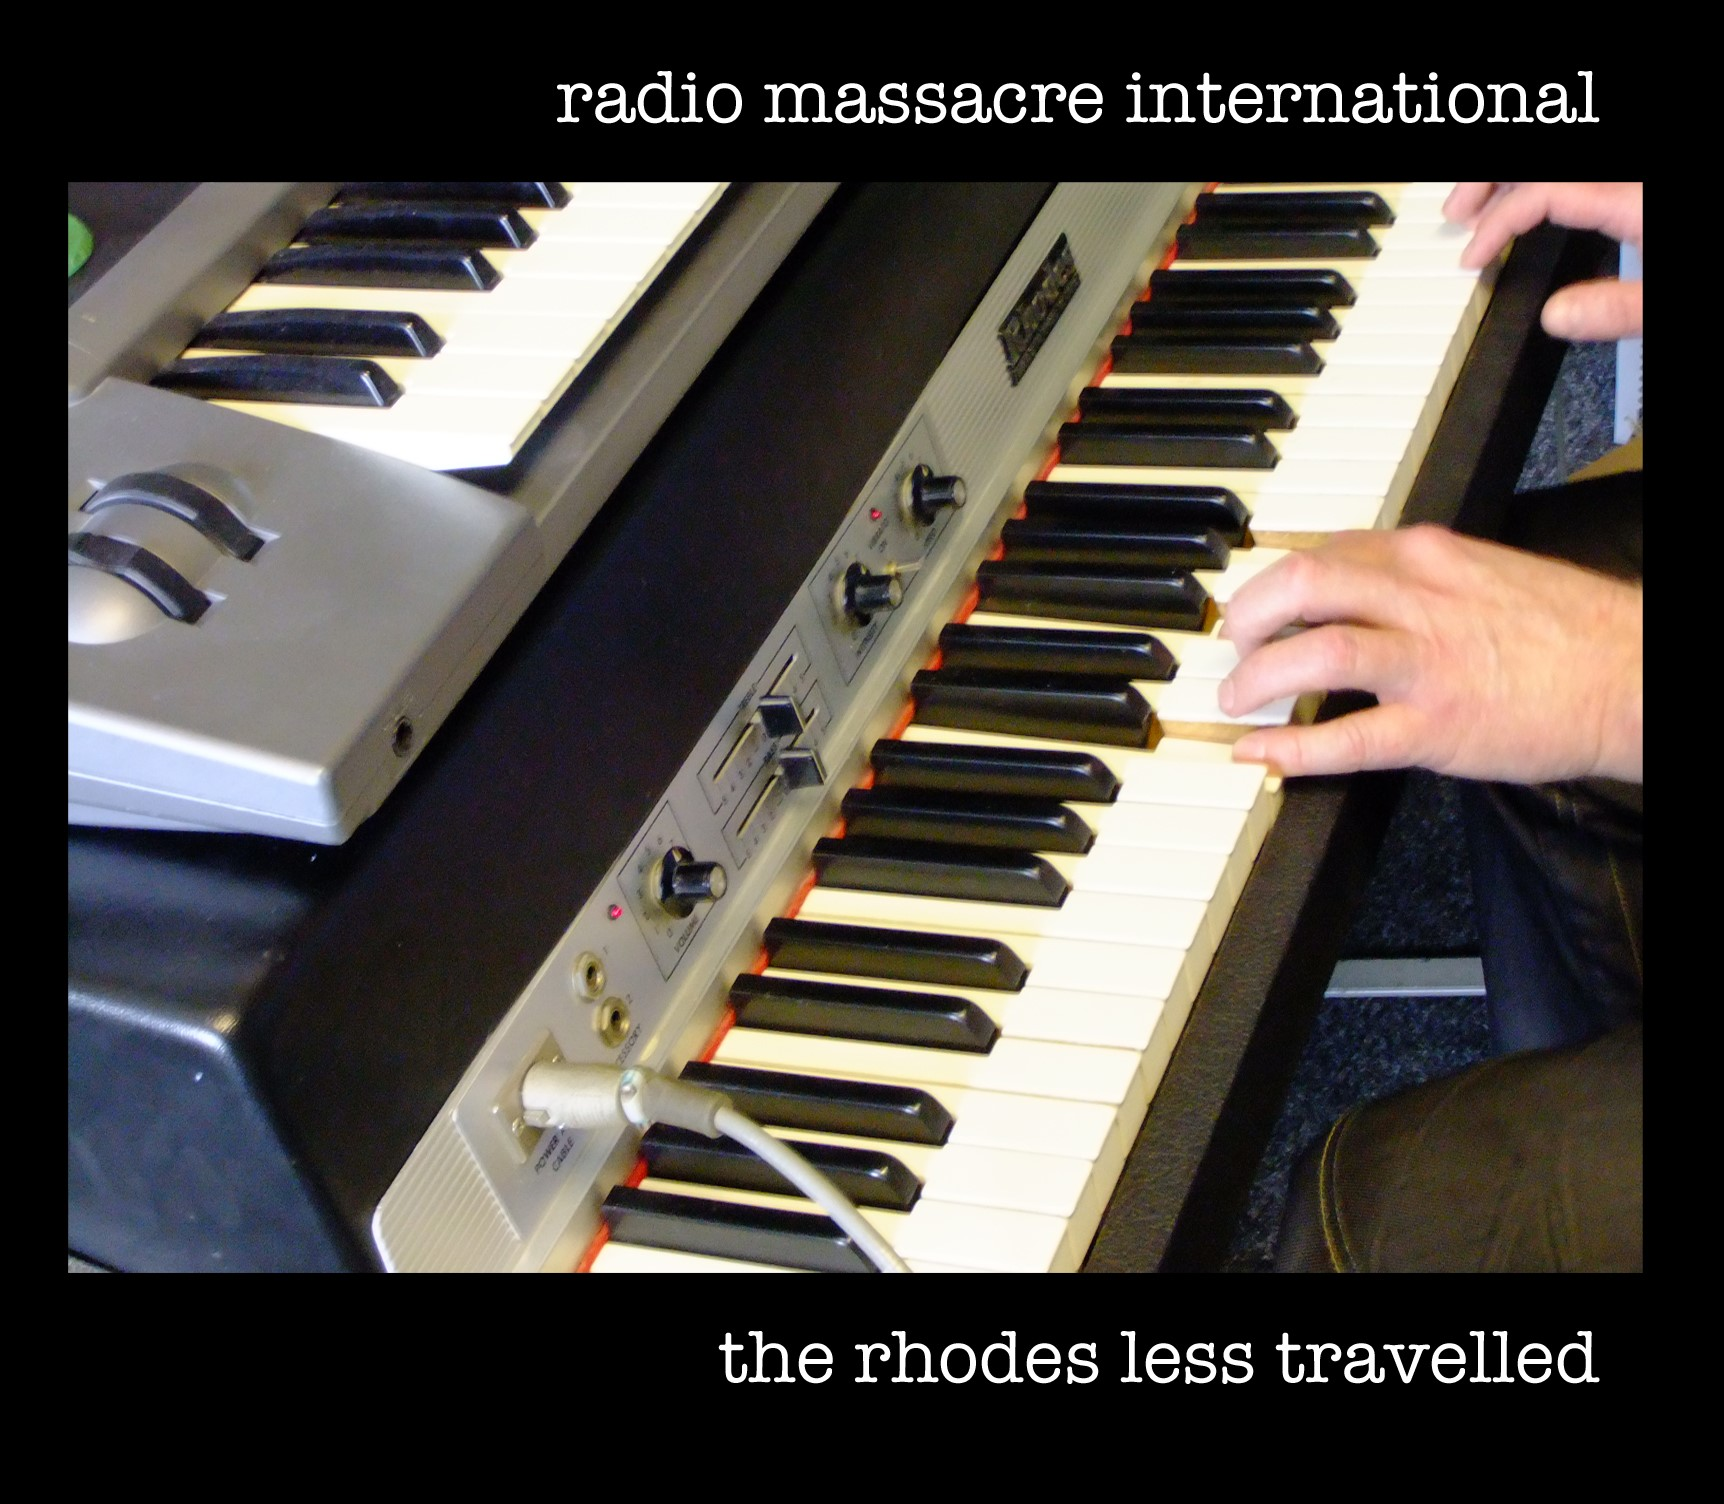 the rhodes less travelled